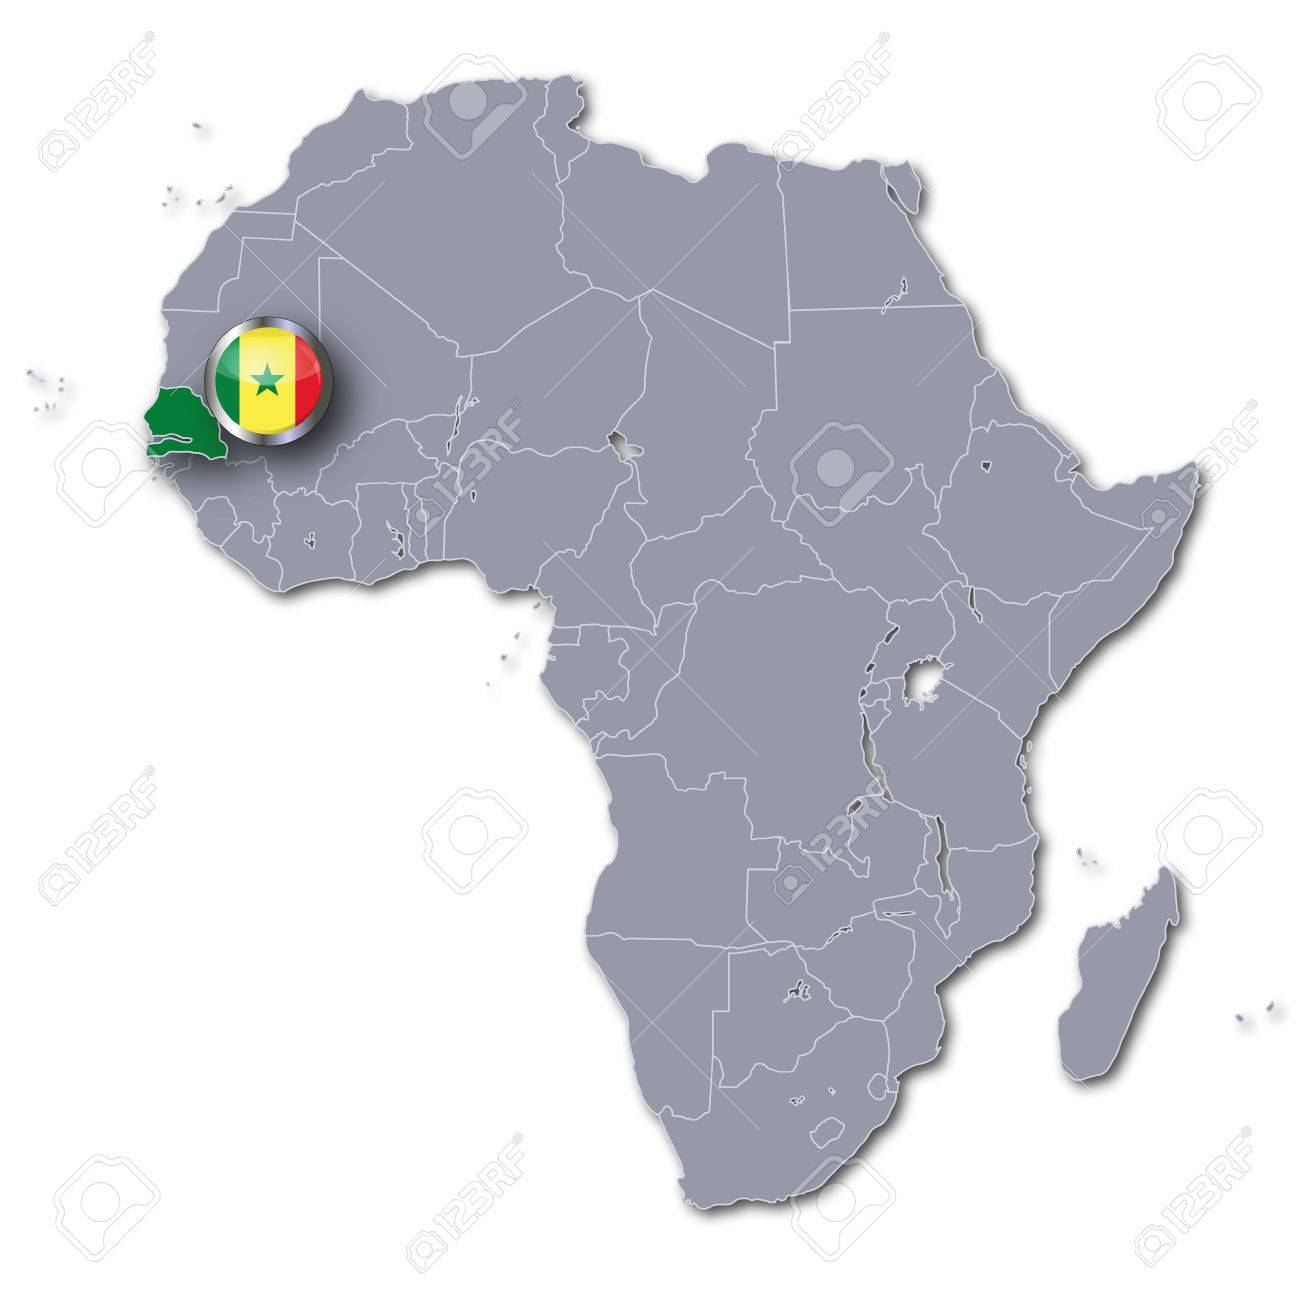 Senegal On Africa Map.Africa Map With Senegal Stock Photo Picture And Royalty Free Image